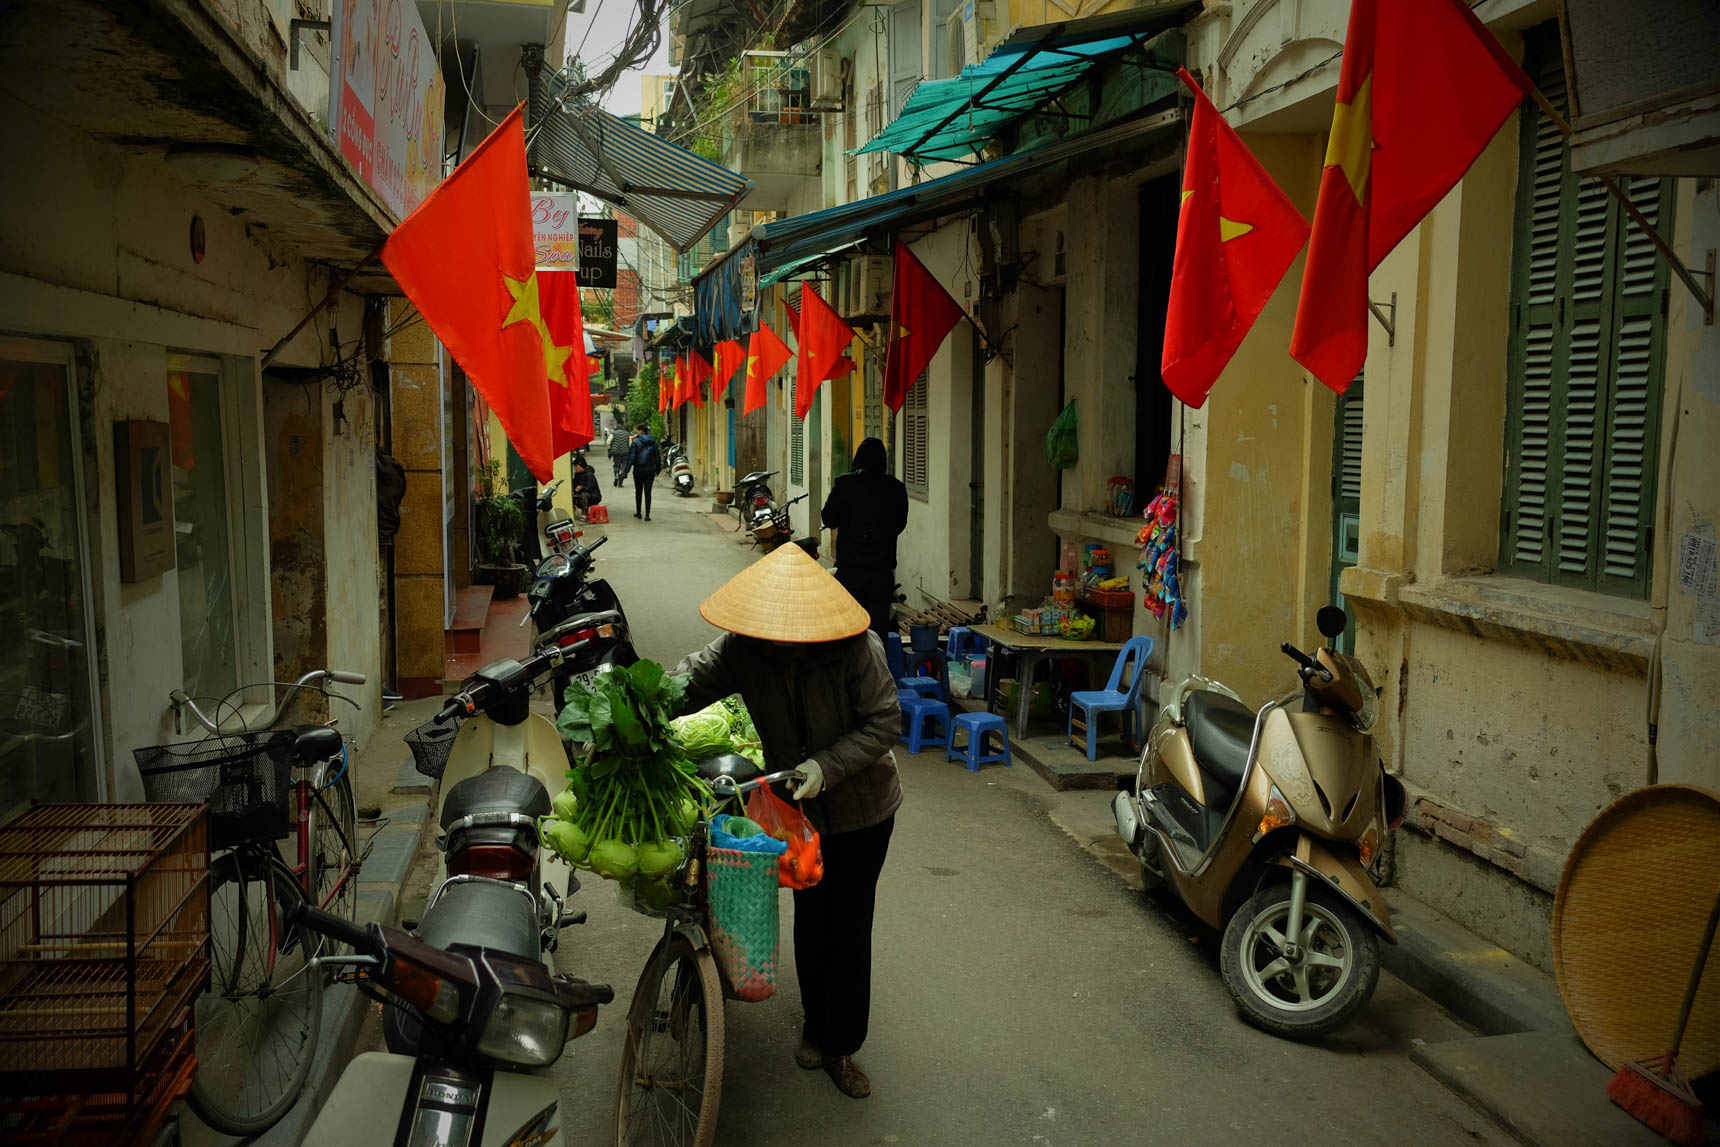 Flags Displayed for Tet New Year